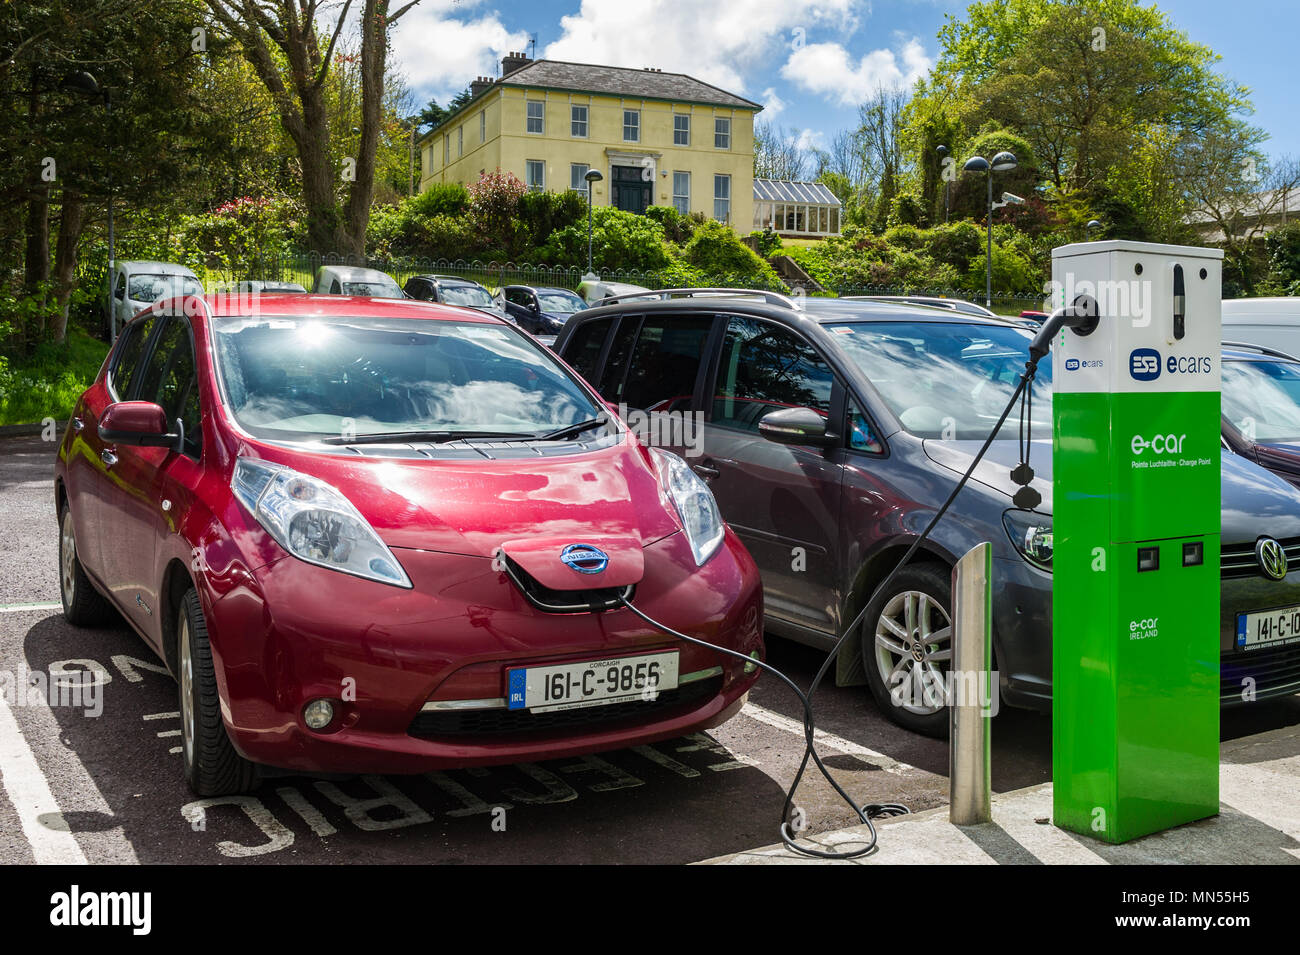 Electric car being charged in a car park in Skibbereen, County Cork, Ireland. - Stock Image